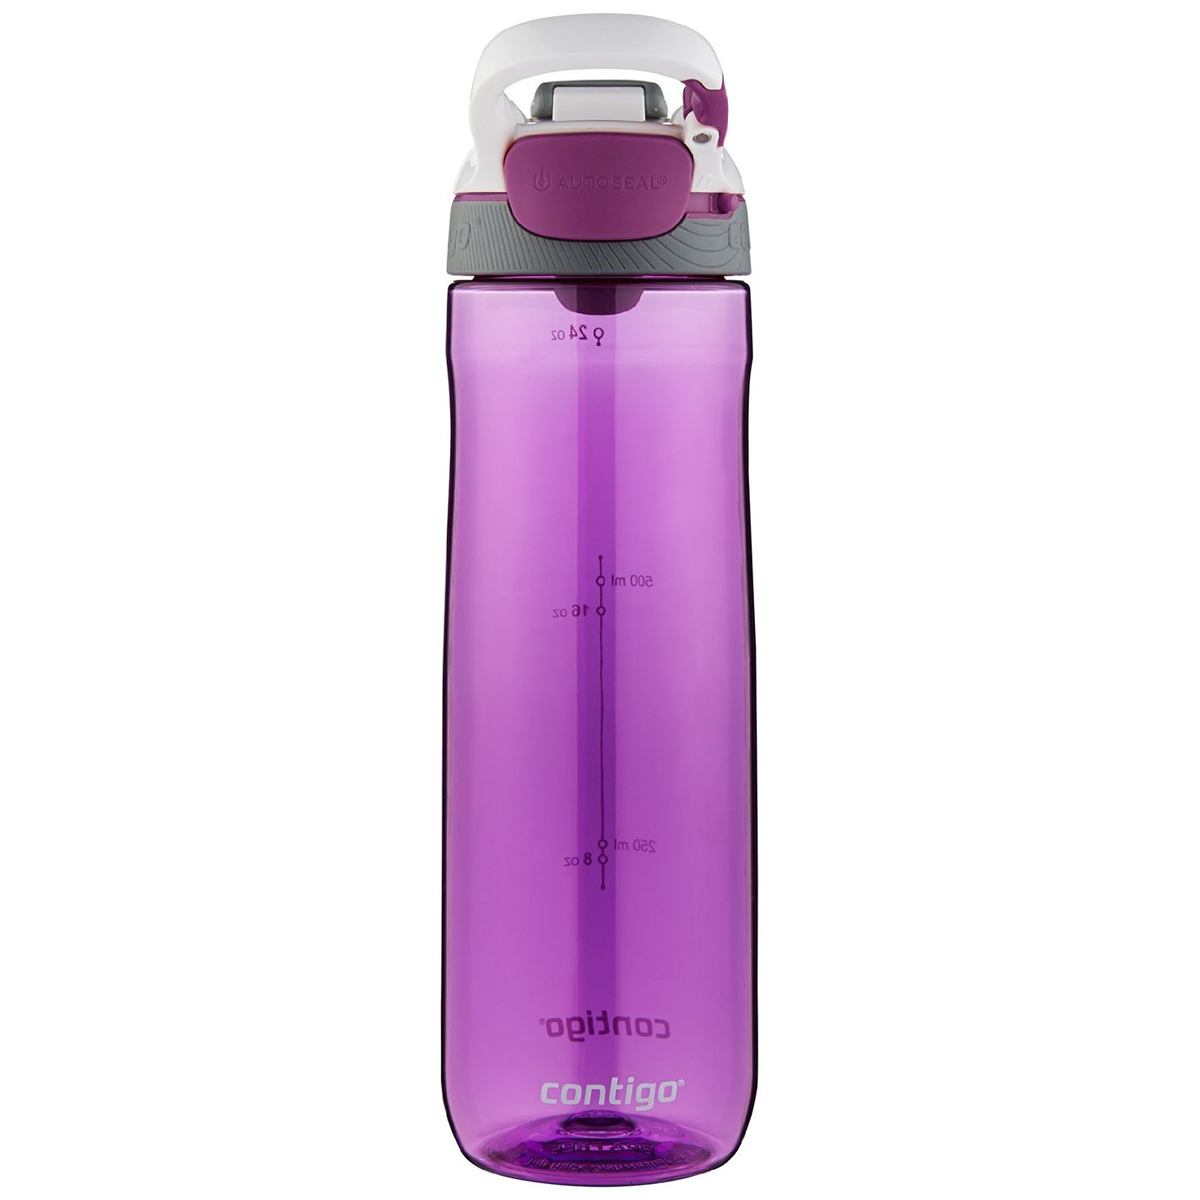 Contigo-24-oz-Cortland-Autoseal-Water-Bottle miniature 9